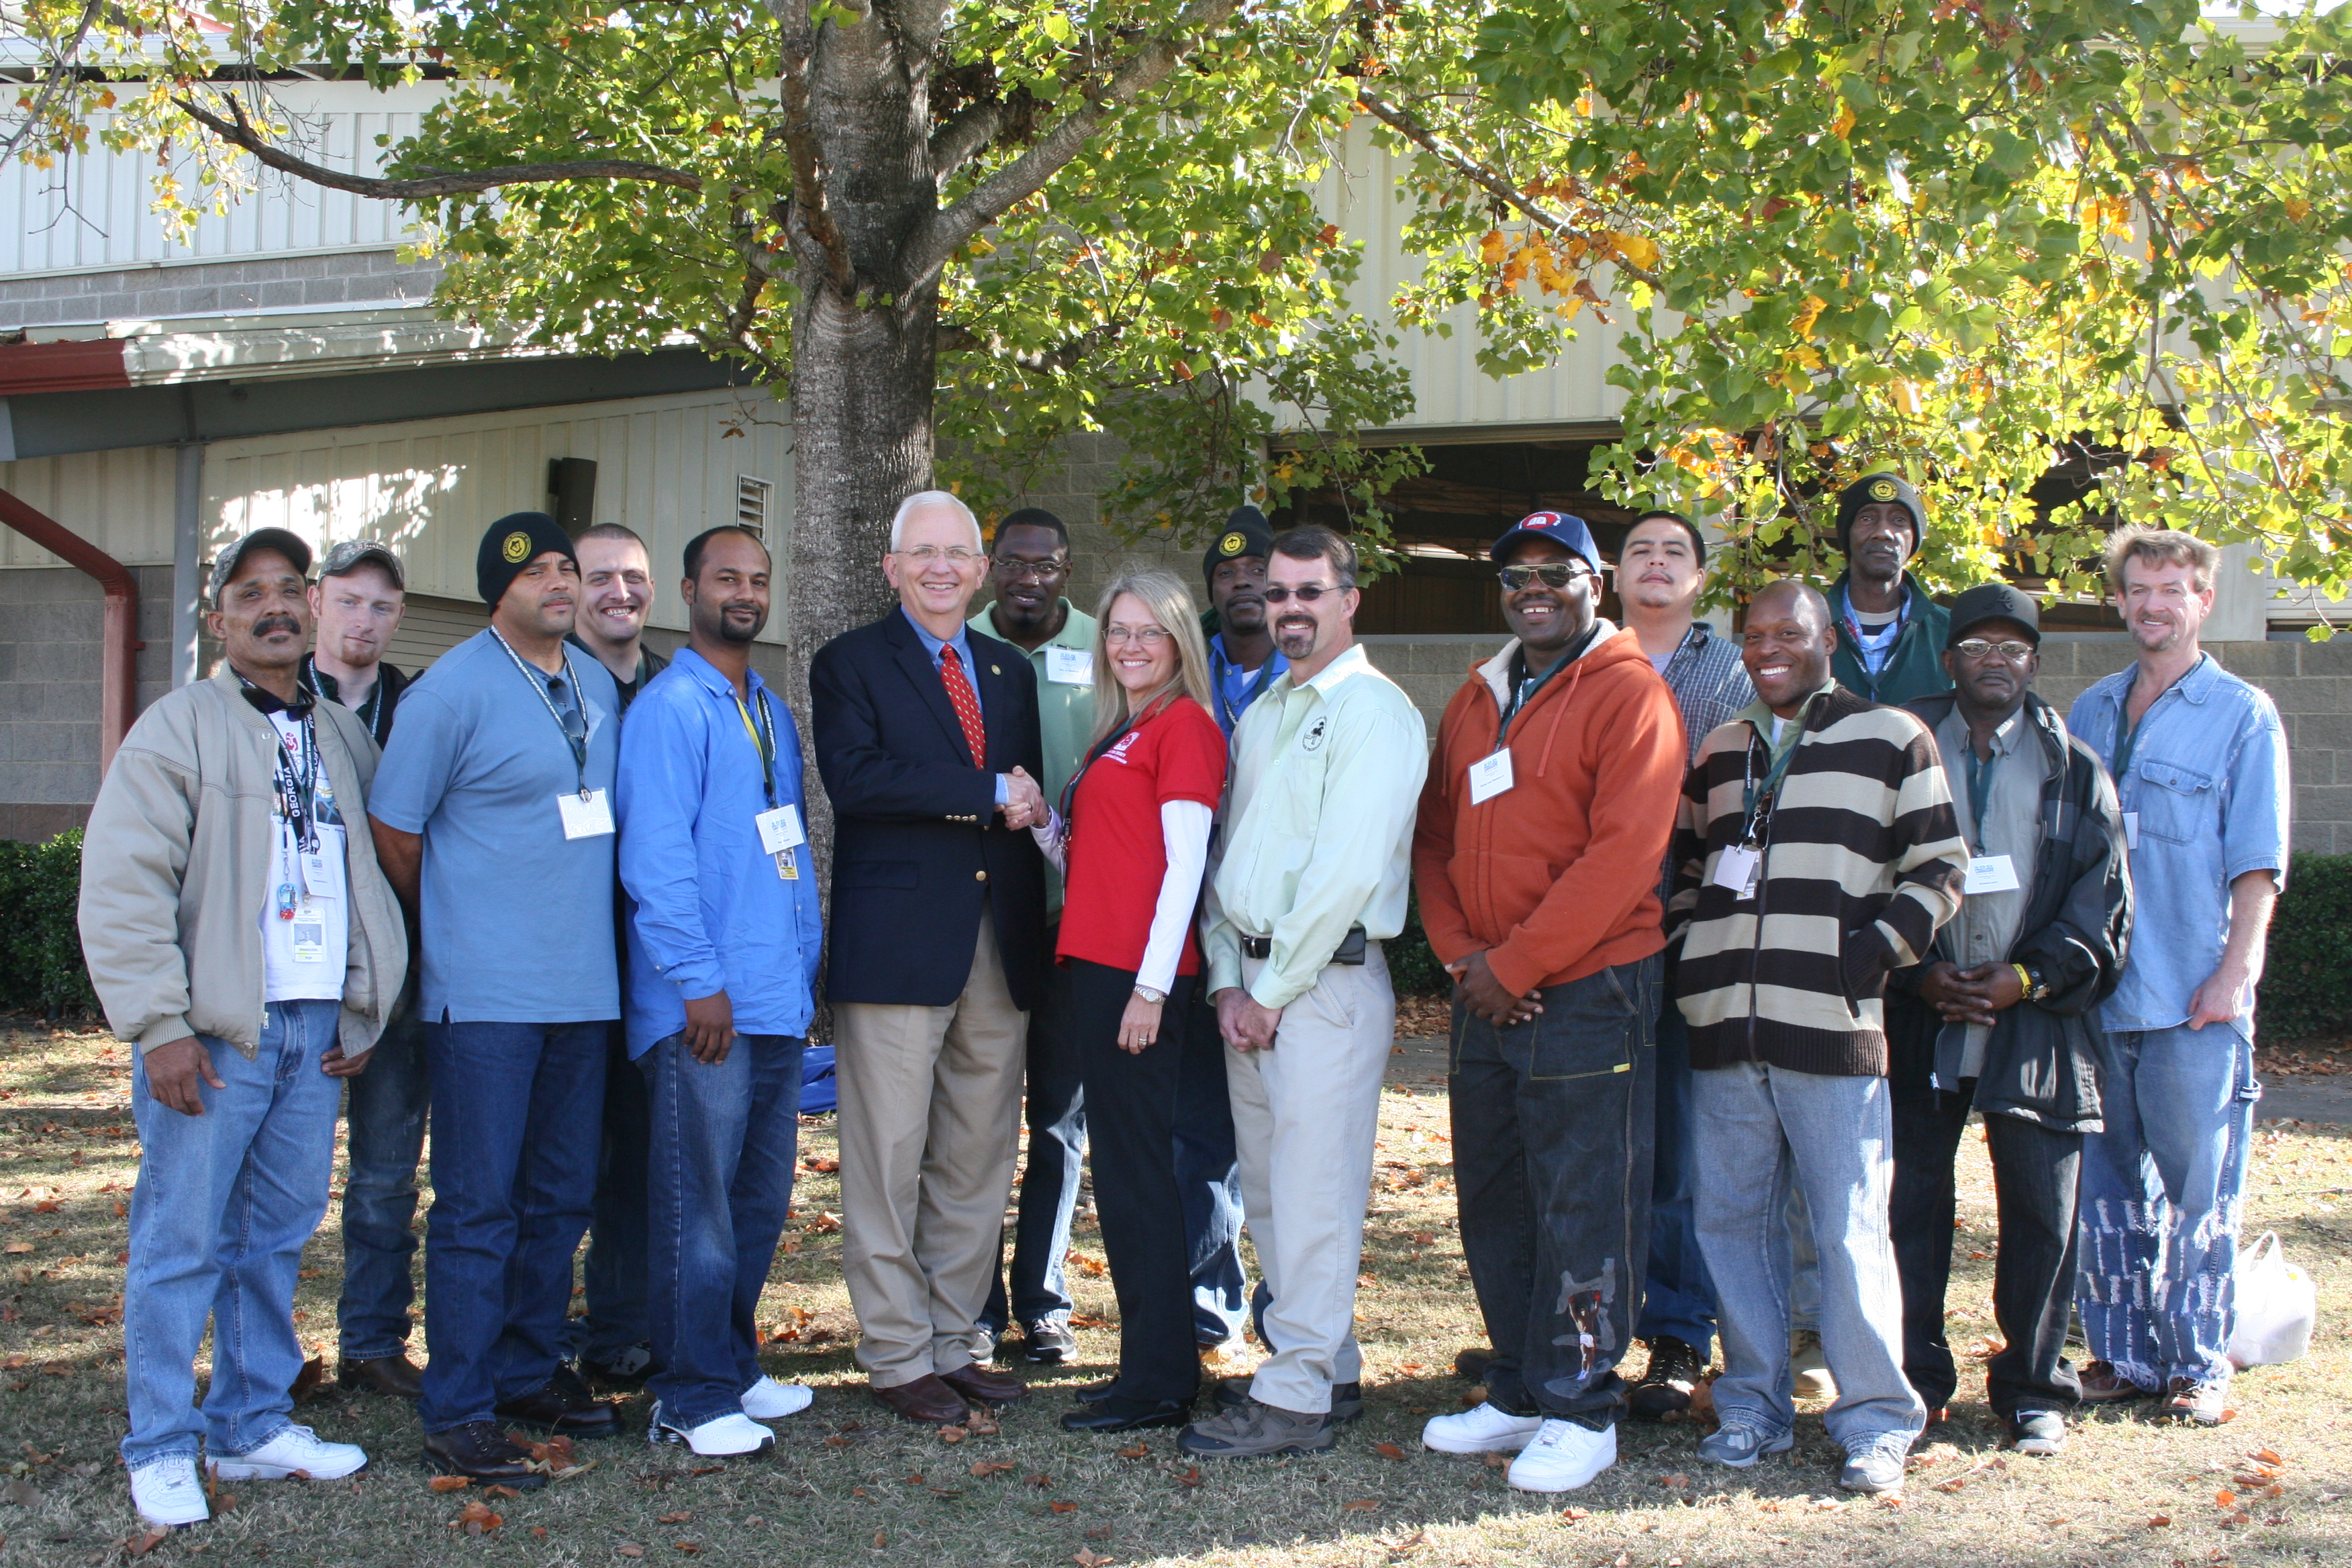 A group of clients from the Atlanta Mission recently graduated from landscaping classes offered by University of Georgia Extension.  Georgia Commissioner of Agriculture Gary Black (center in blue blazer) is shown congratulating the men and their instructor Louise Estrabrook (red shirt), UGA Extension agent in Fulton County.